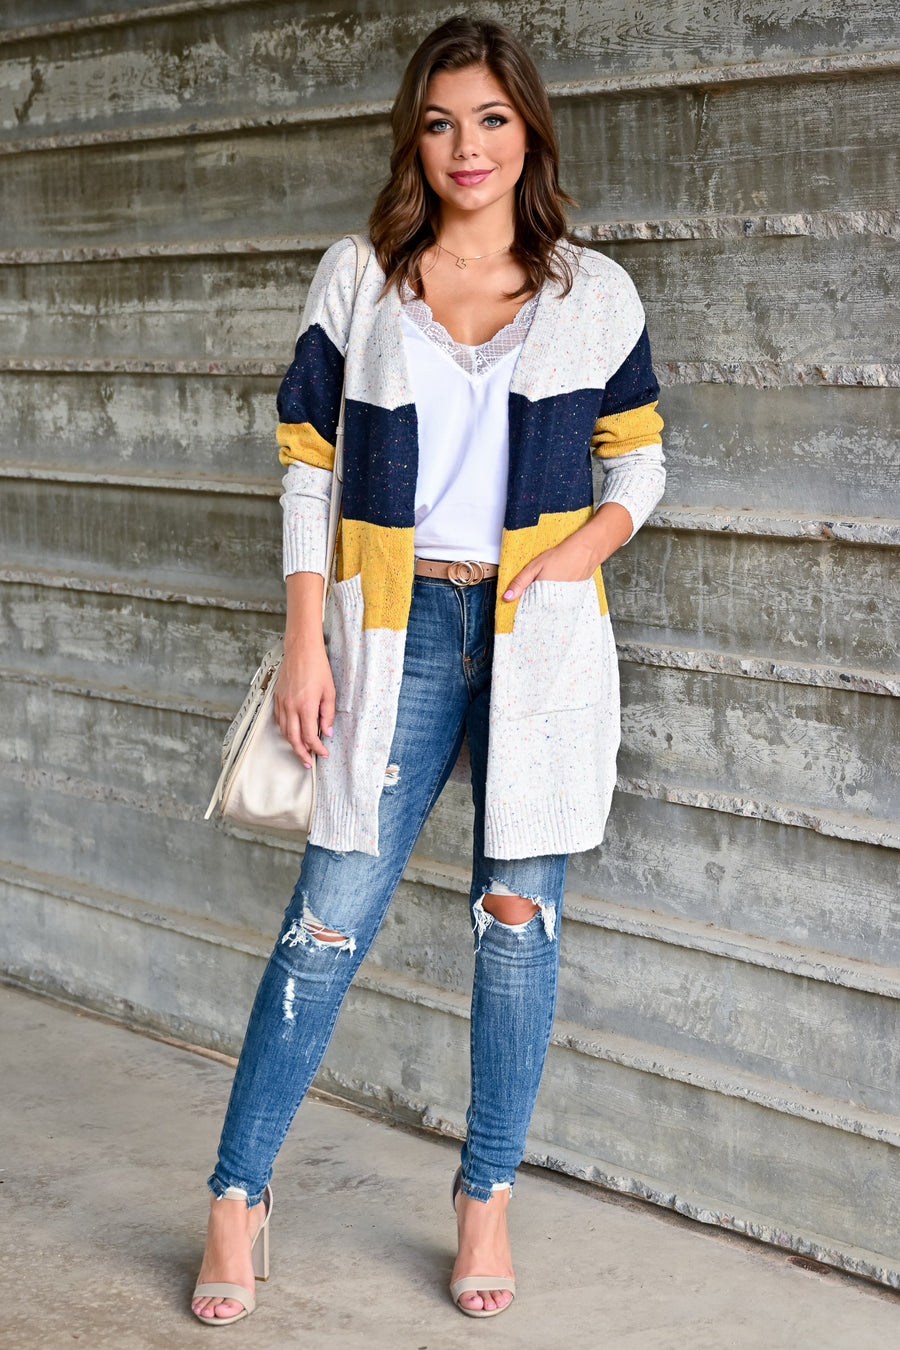 Mixed Emotions Color Block Cardigan - Navy & Mustard womens casual long sleeve speckled detail color block oversized cardigan closet candy side; Model: Hannah Sluss